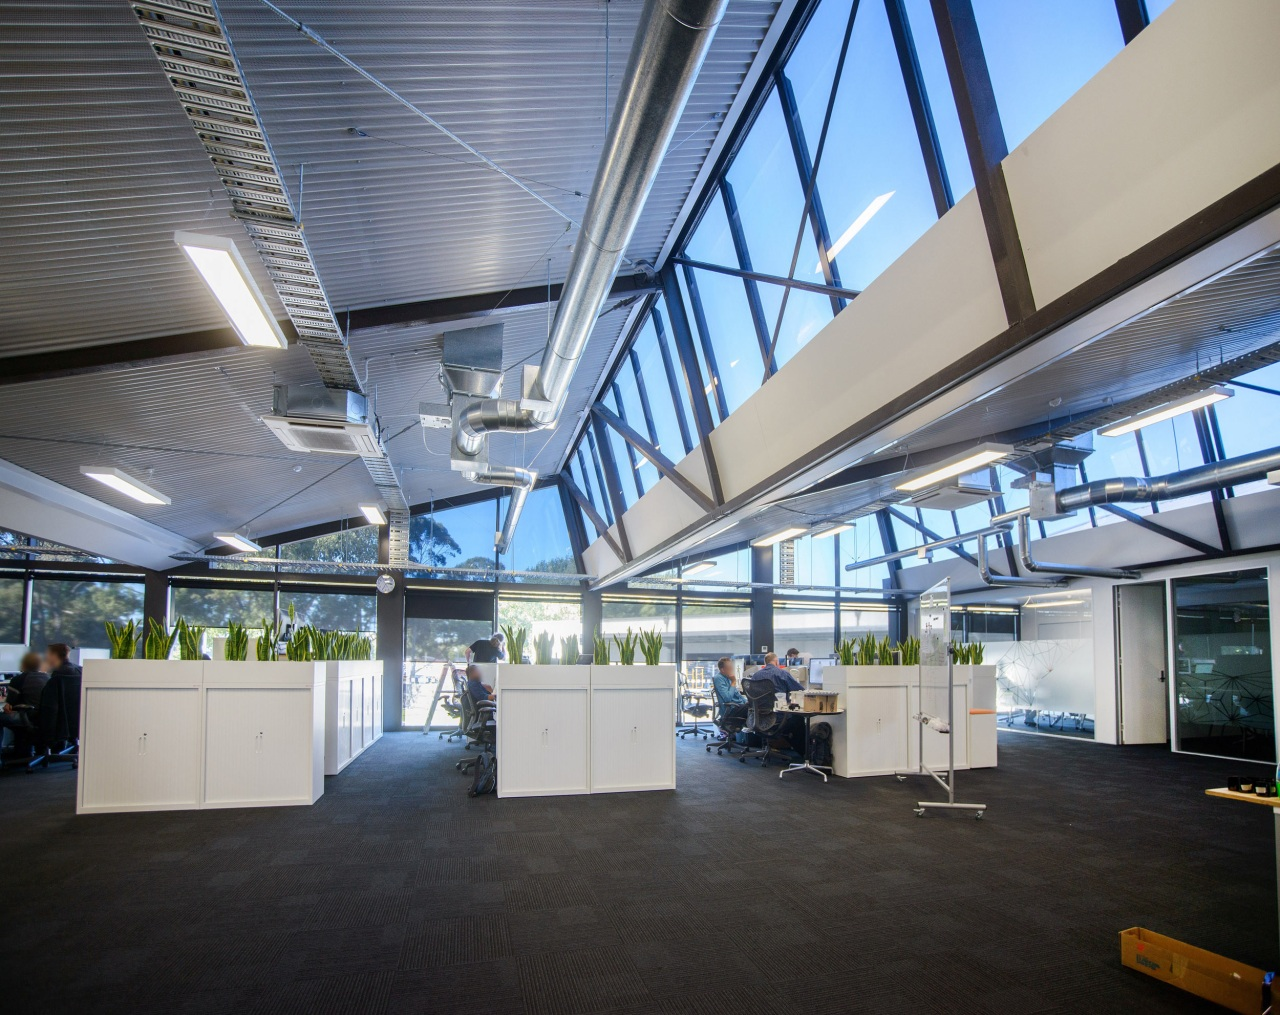 Window solutions from Fairview Systems optimise natural light, ceiling, daylighting, headquarters, real estate, gray, black